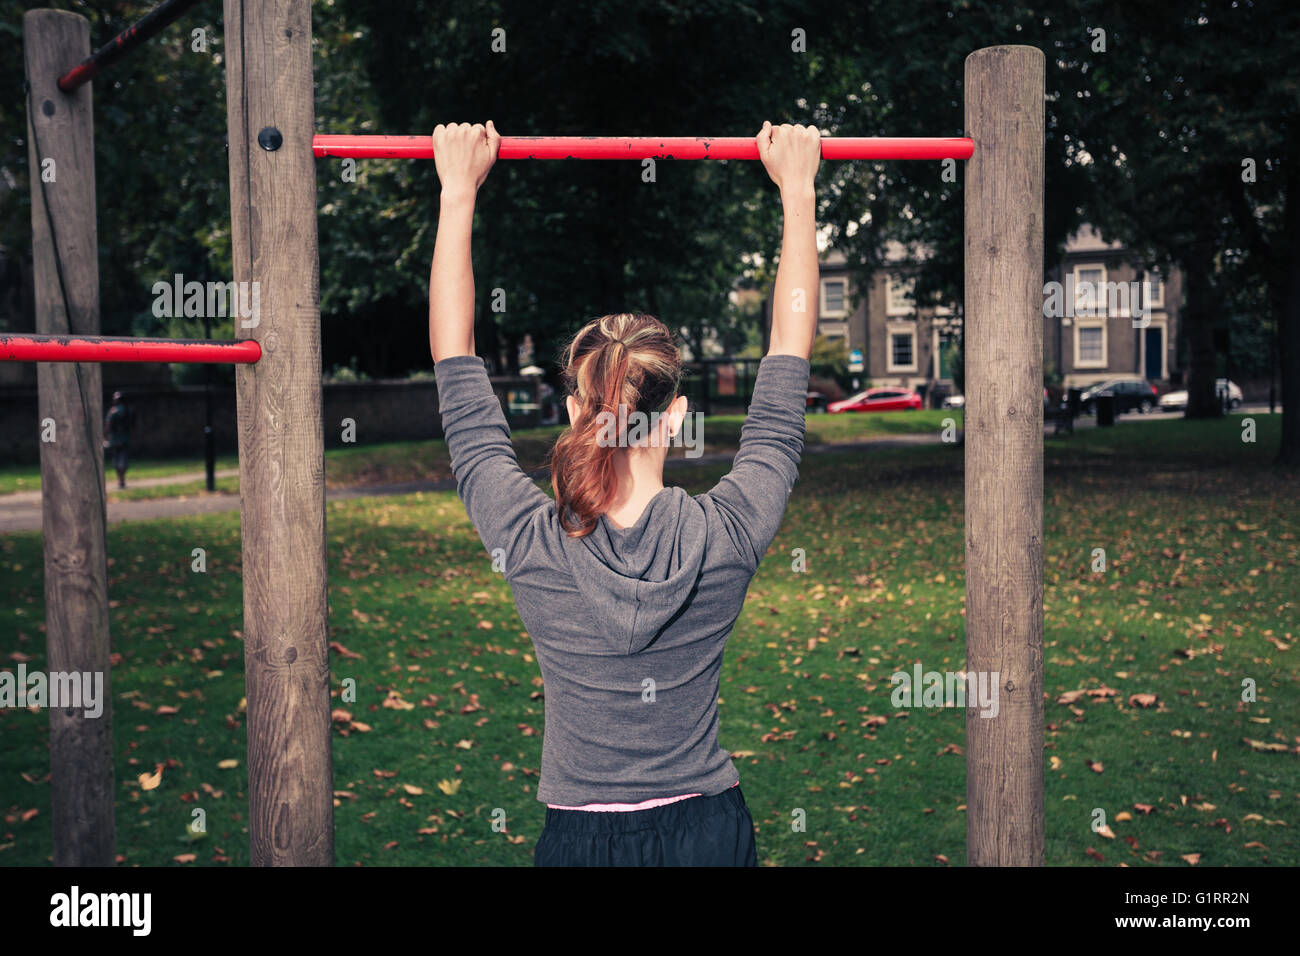 A young woman is doing pullups in the park - Stock Image